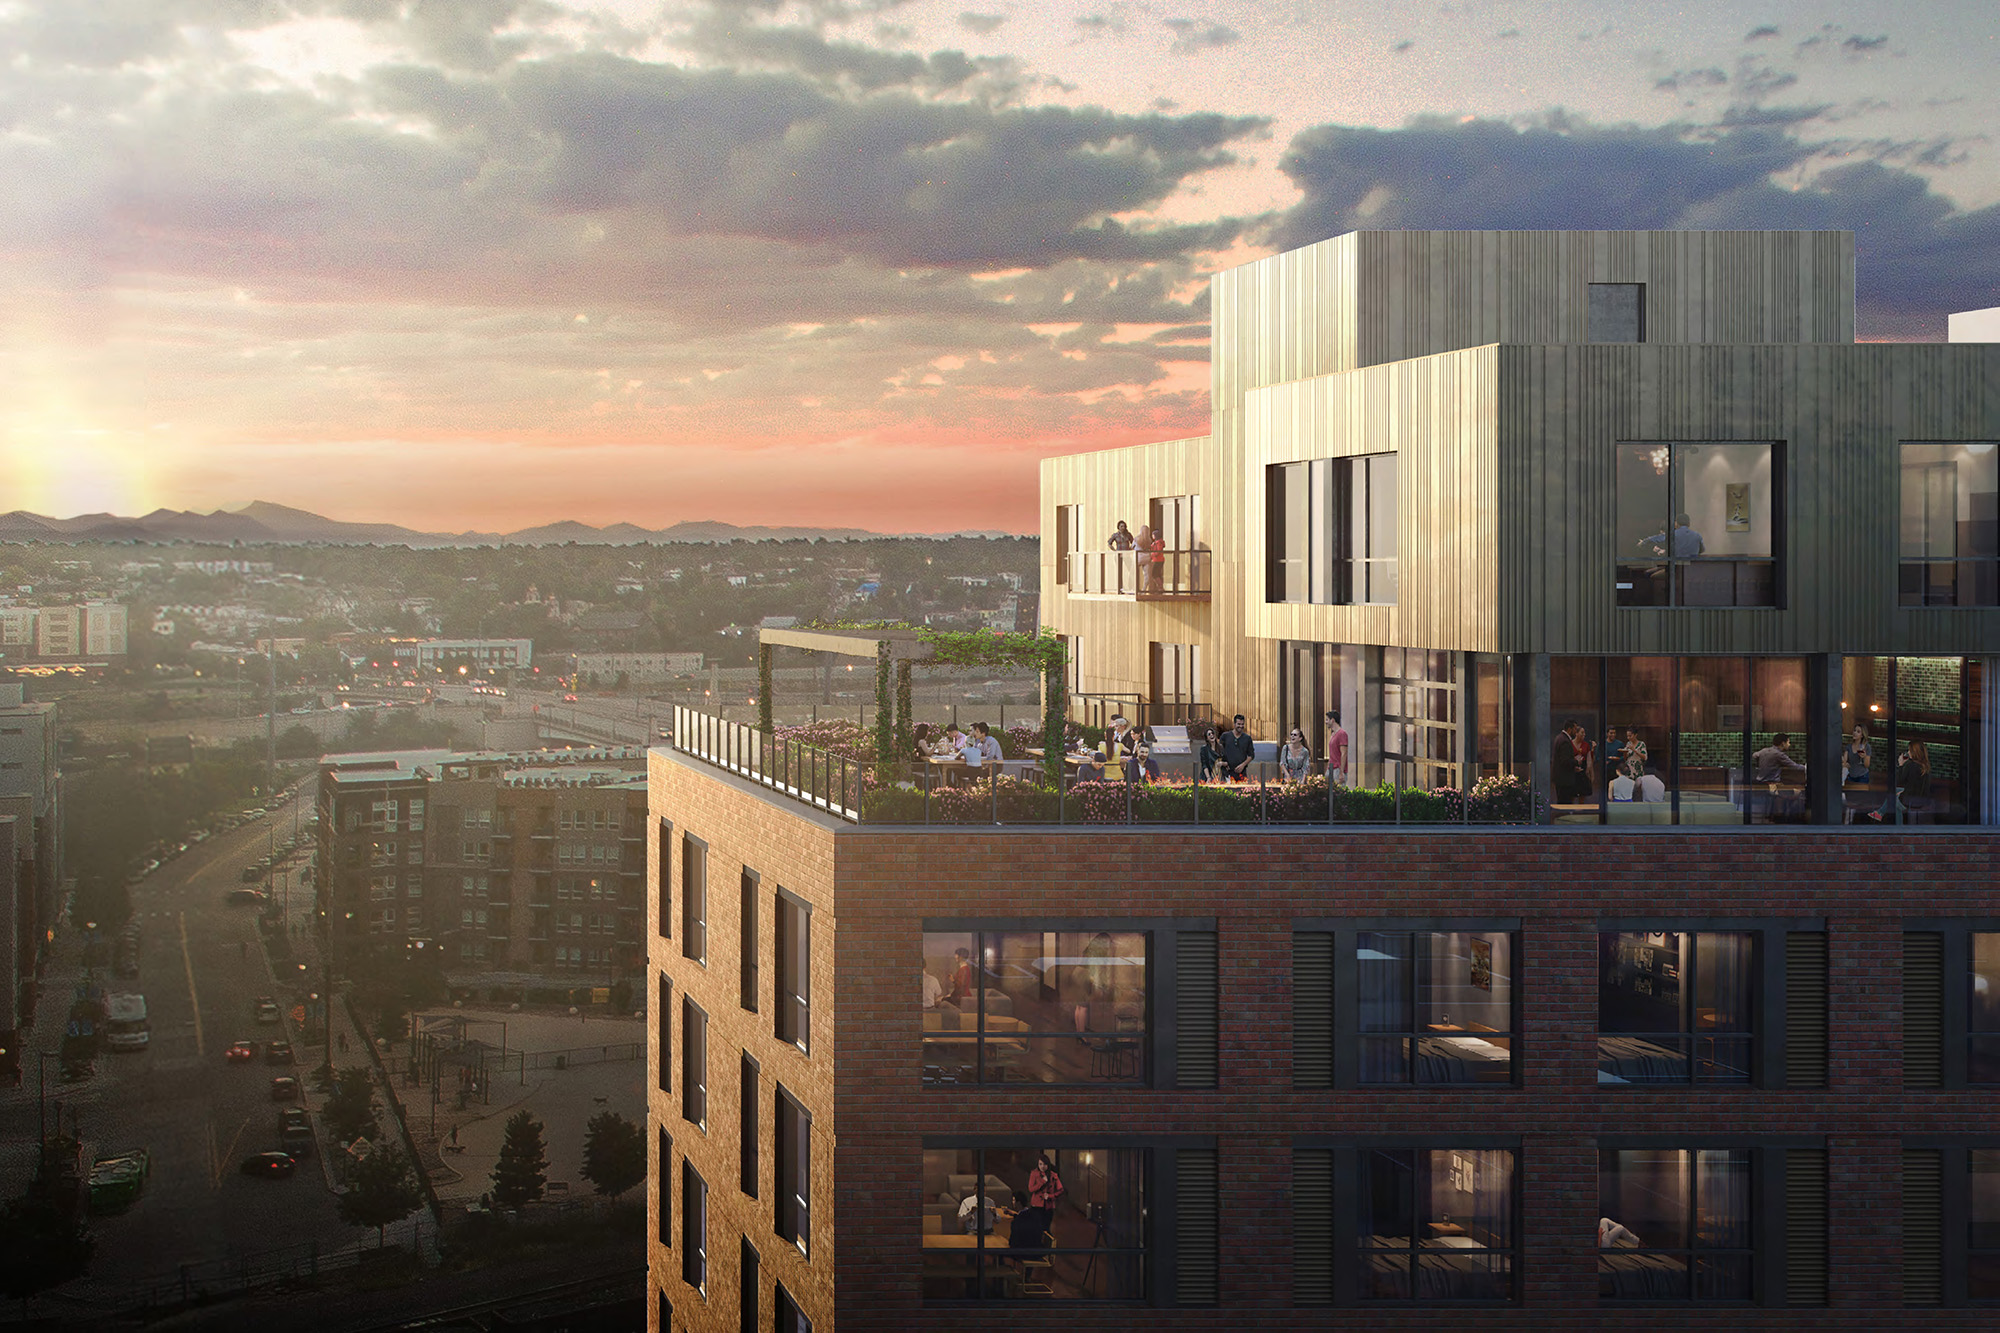 More Details on 19th & Chestnut Project